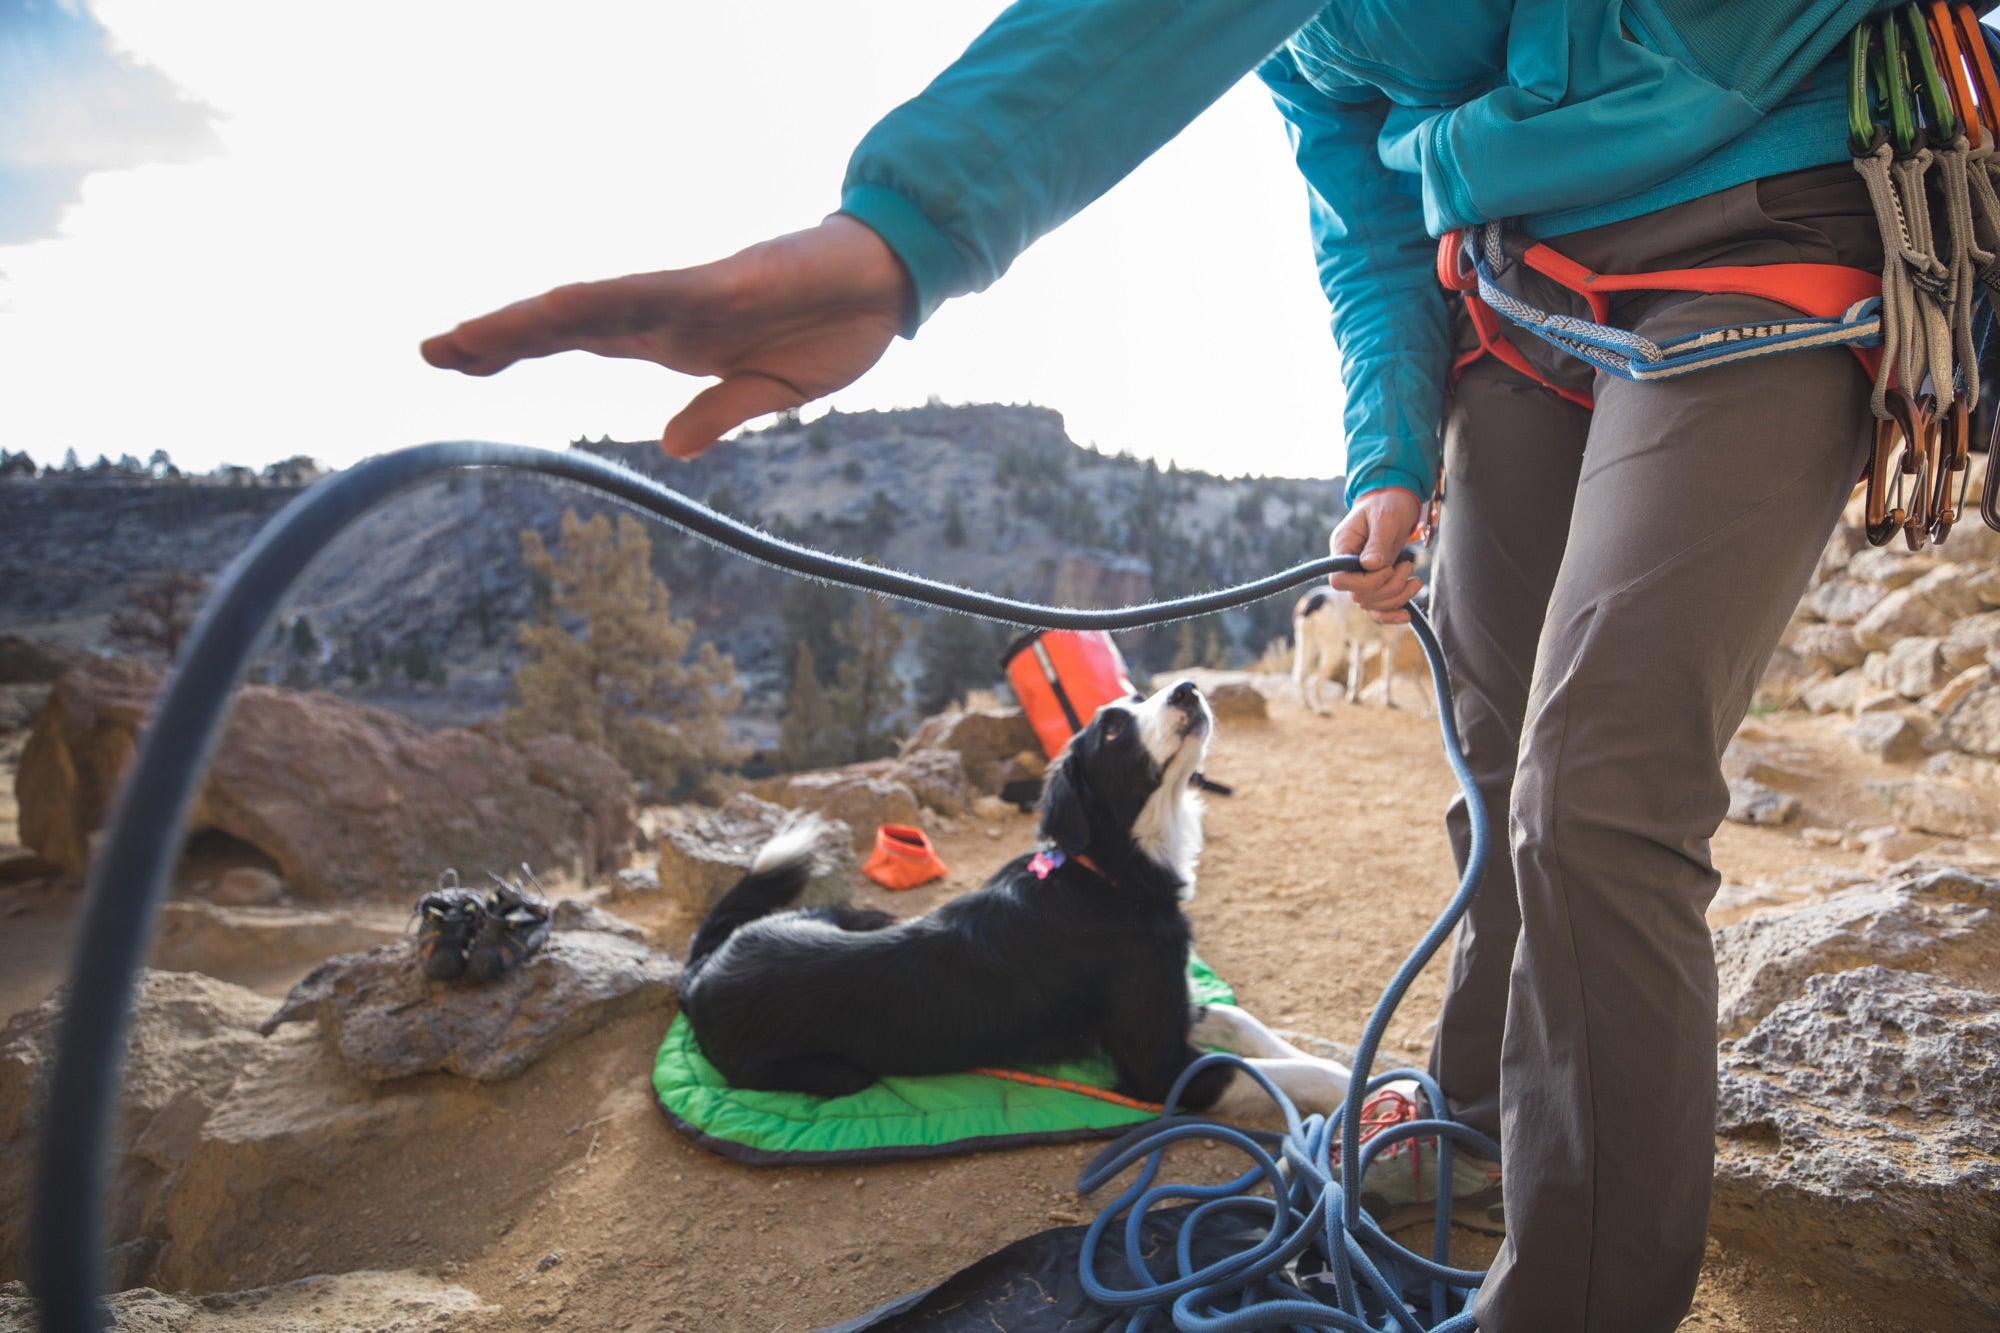 Woman gets climbing rope ready while dog looks on.